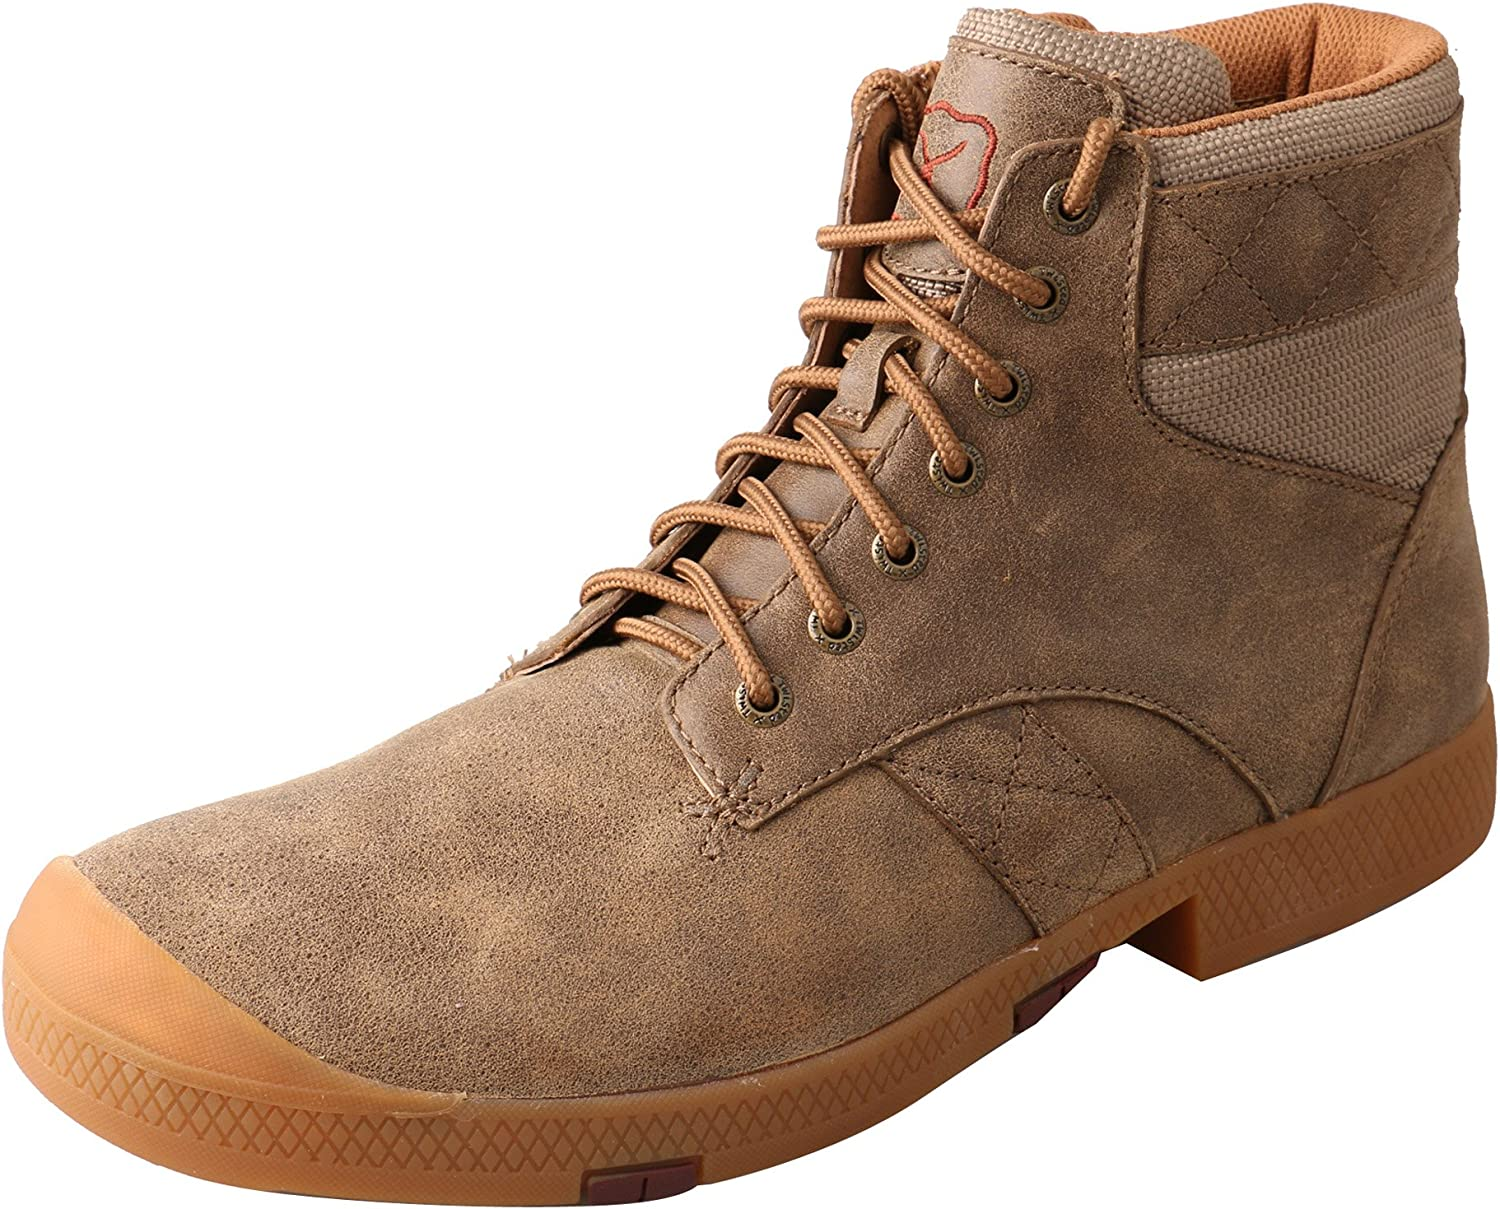 Twisted X Casual shoes Mens Lace Up B Toe Mocs 11.5 W Bomber MCA0008